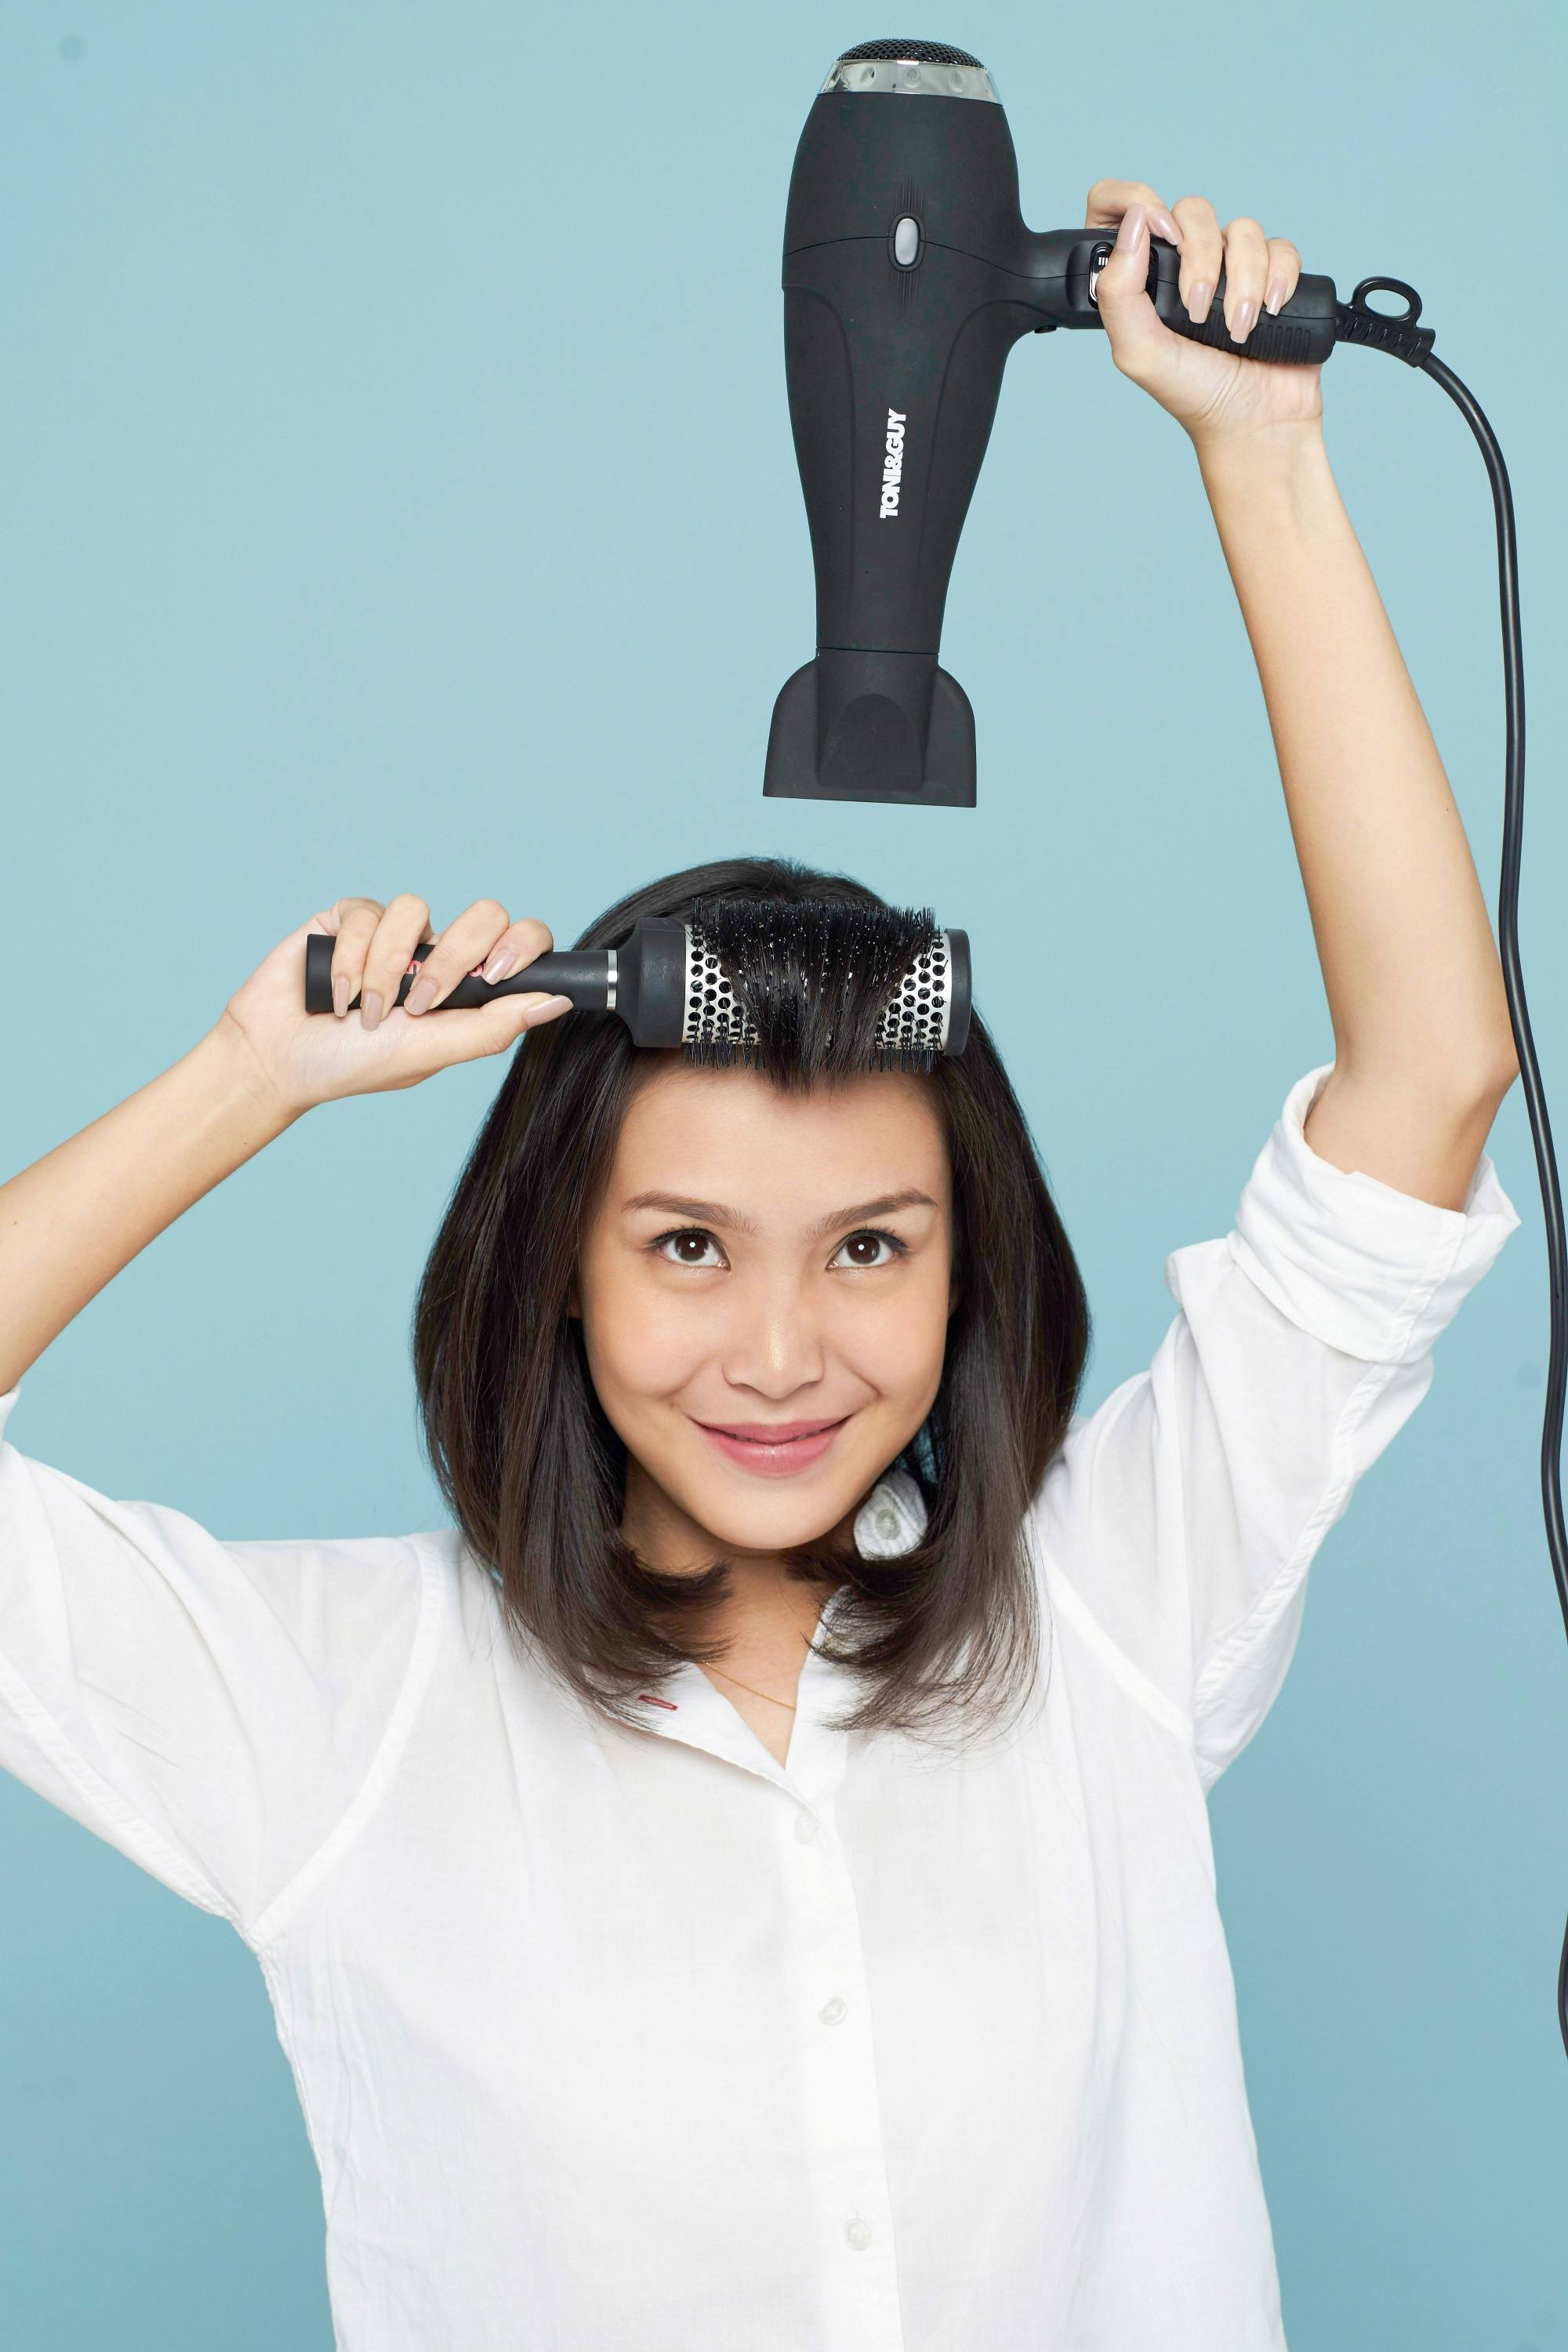 Styling blunt bangs: Asian woman with black hair blow drying her bangs